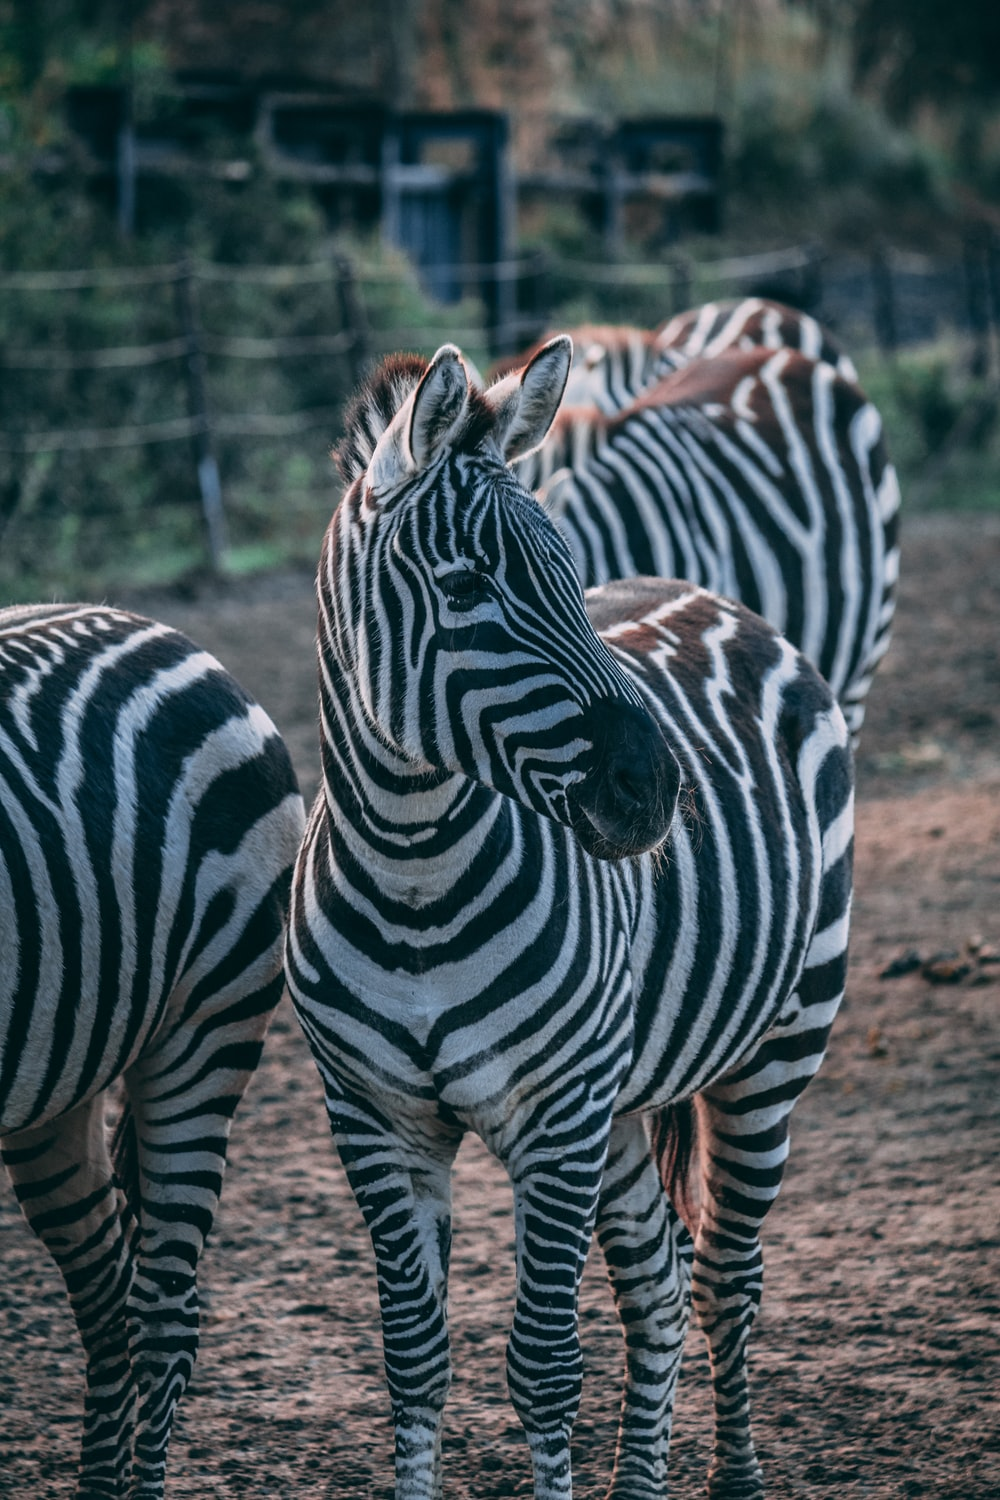 photo of zebra during daytime